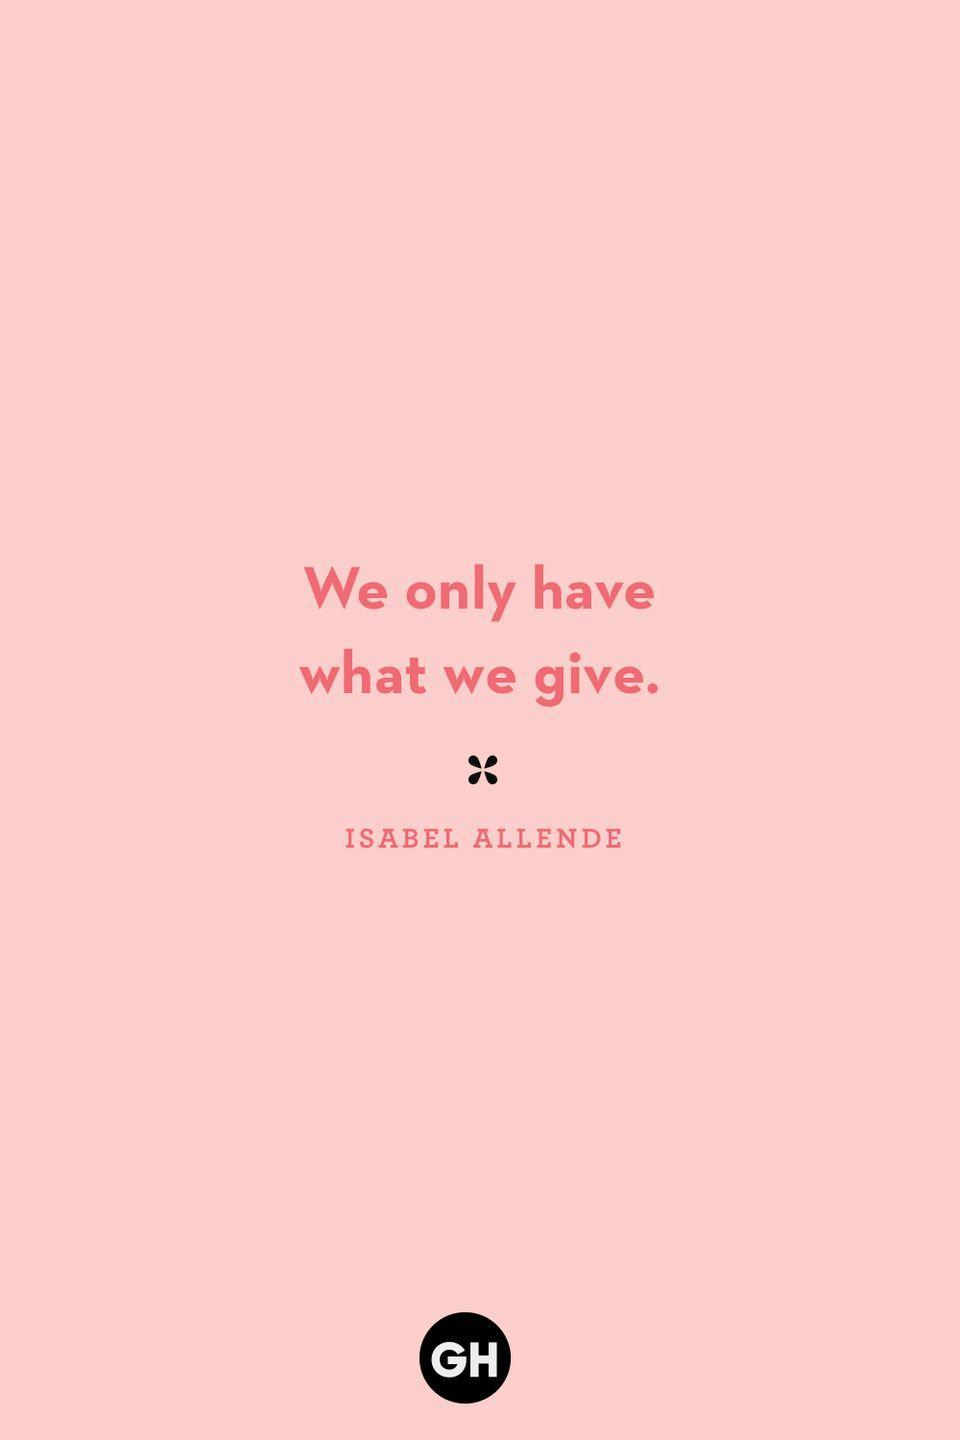 <p>We only have what we give.</p>